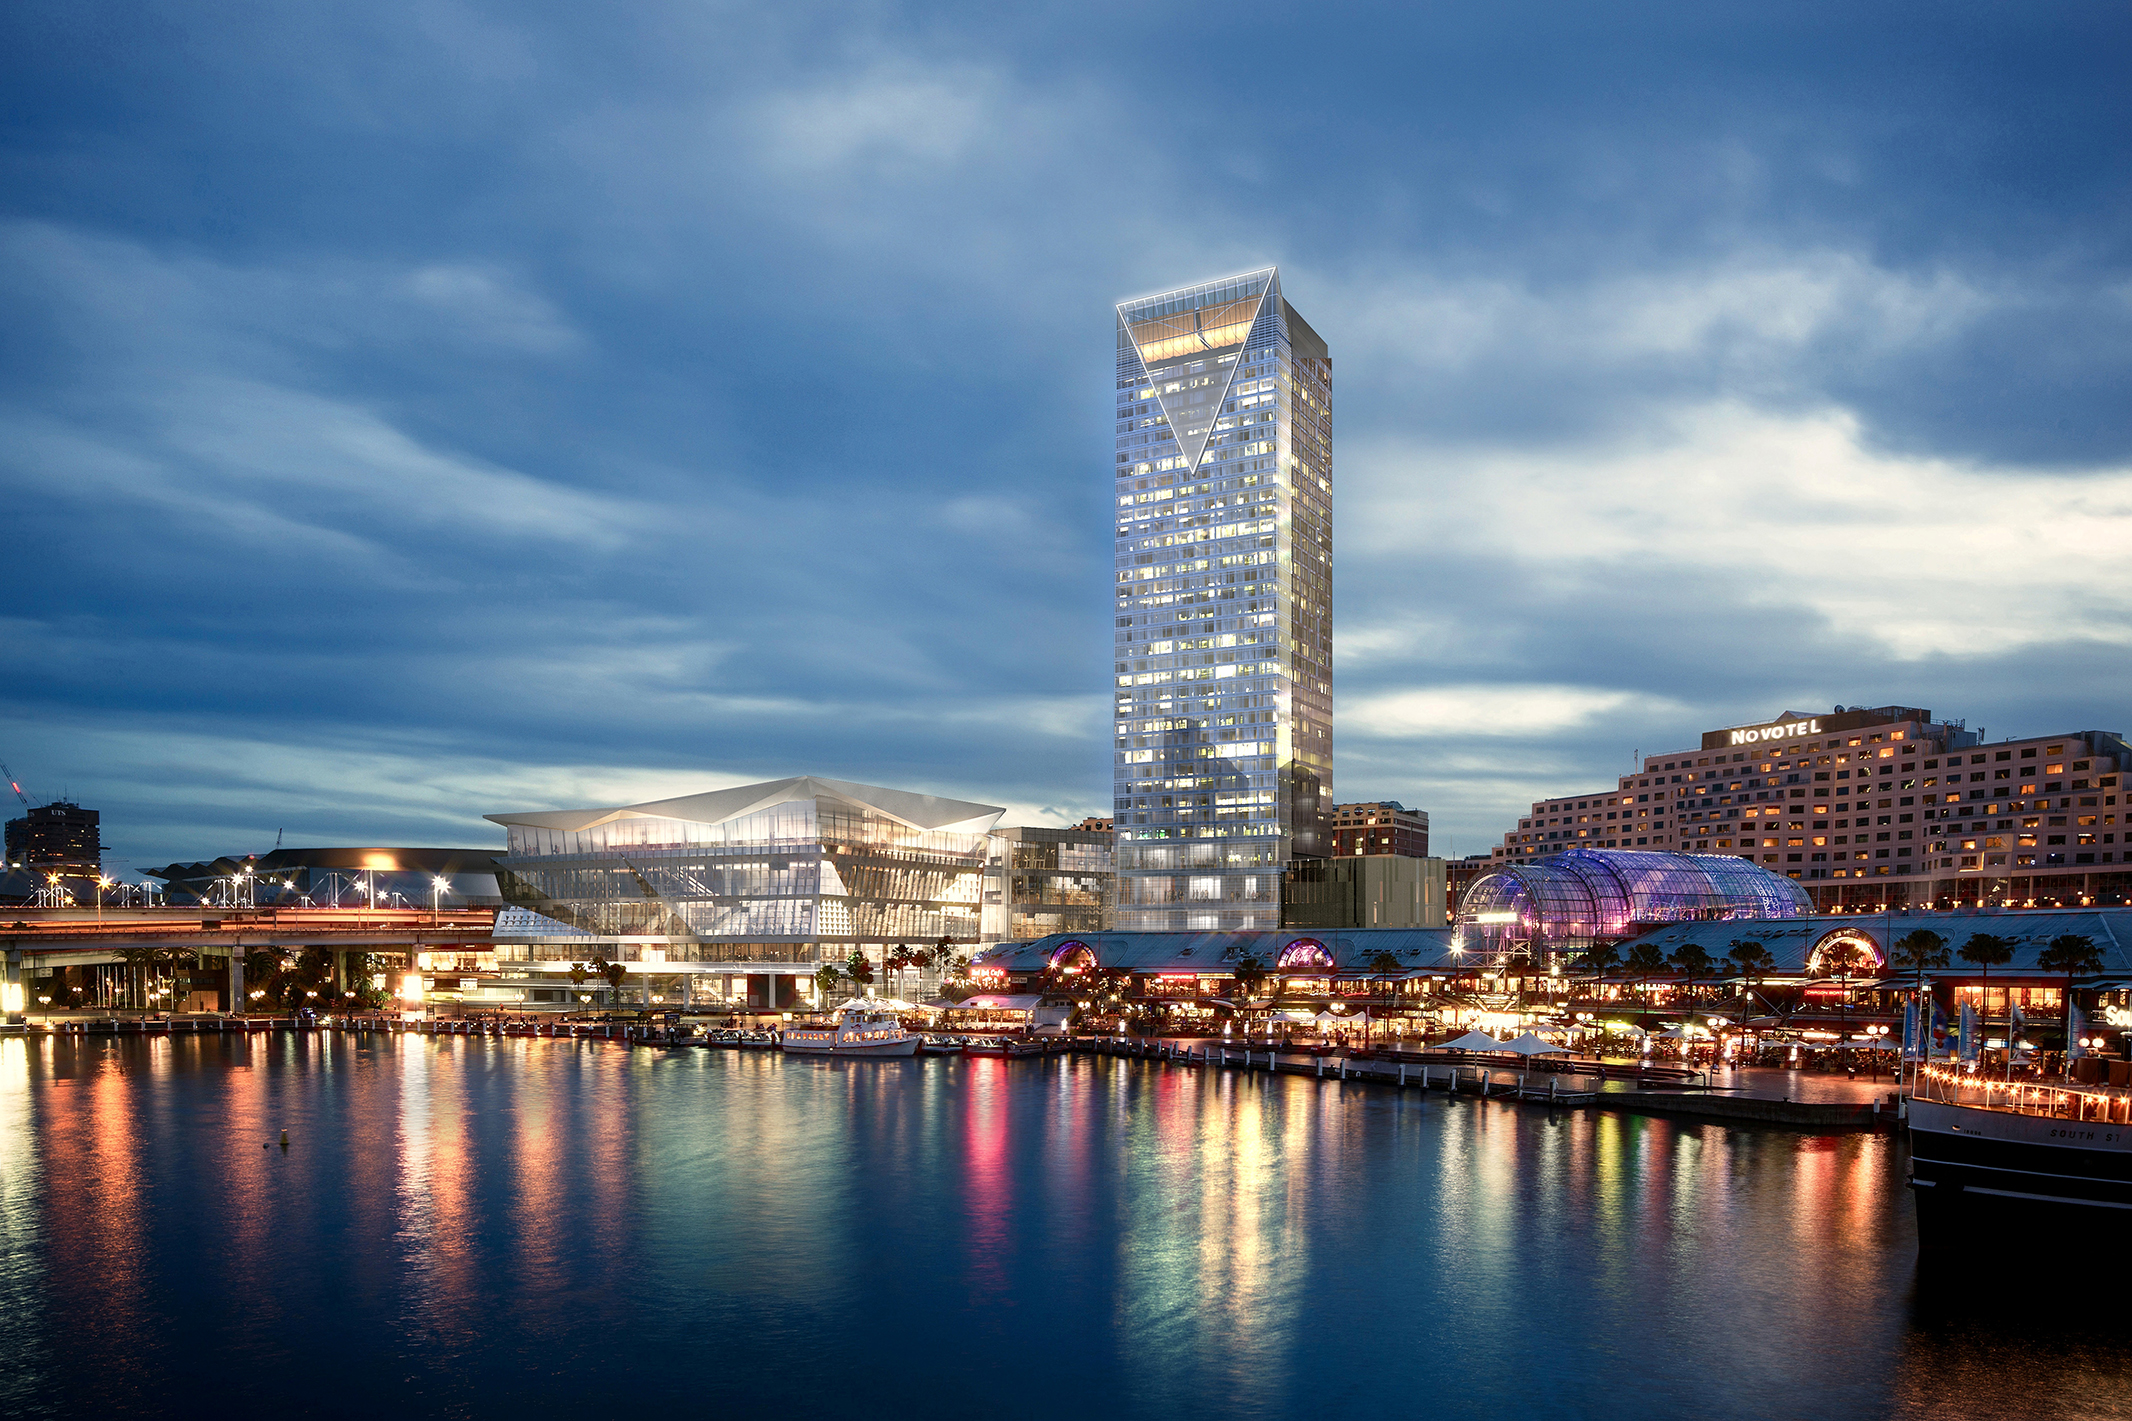 Sofitel Darling Harbour rendering